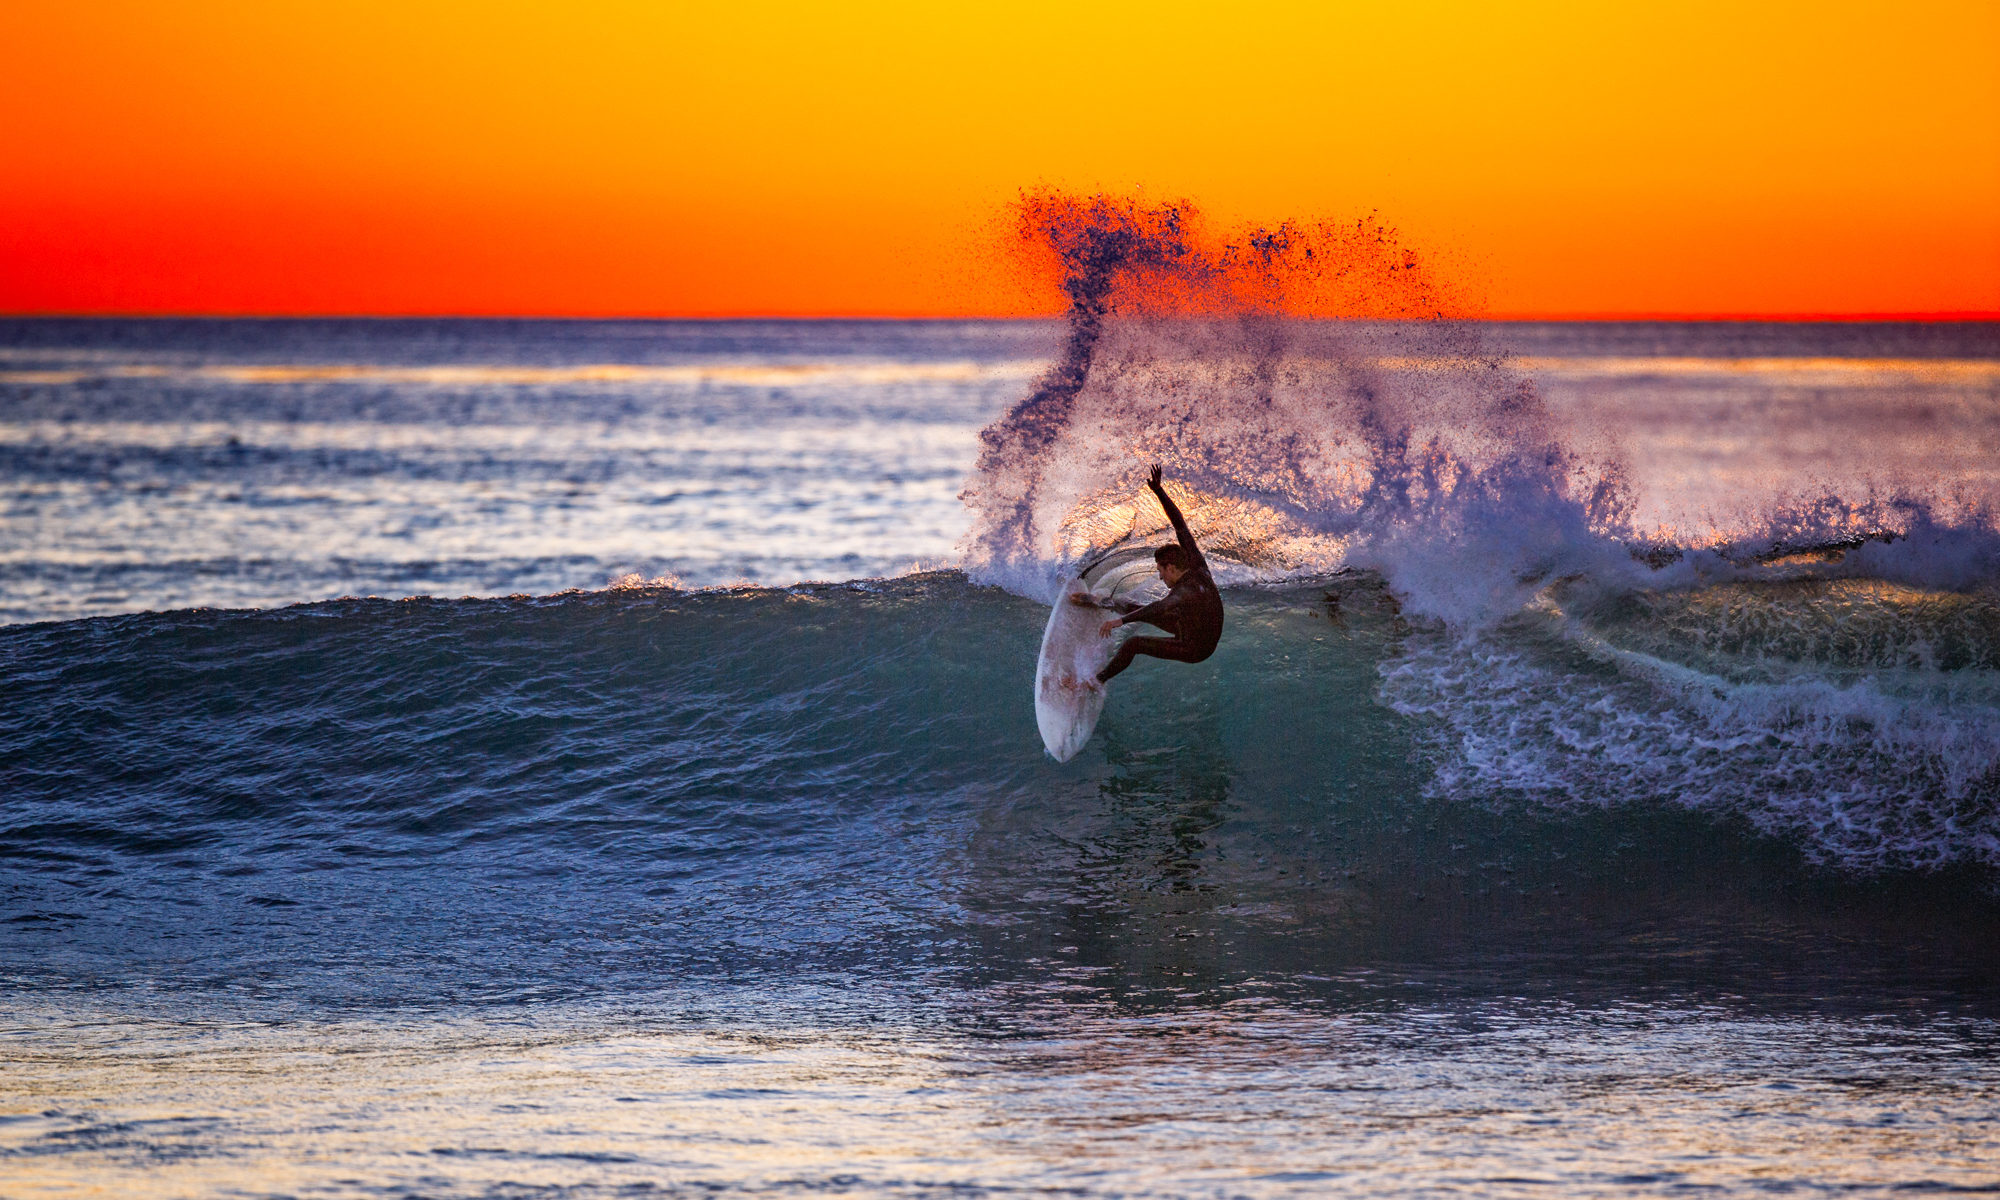 A surfer at sunset in La Jolla, California by Mark Johnson/Ironstring